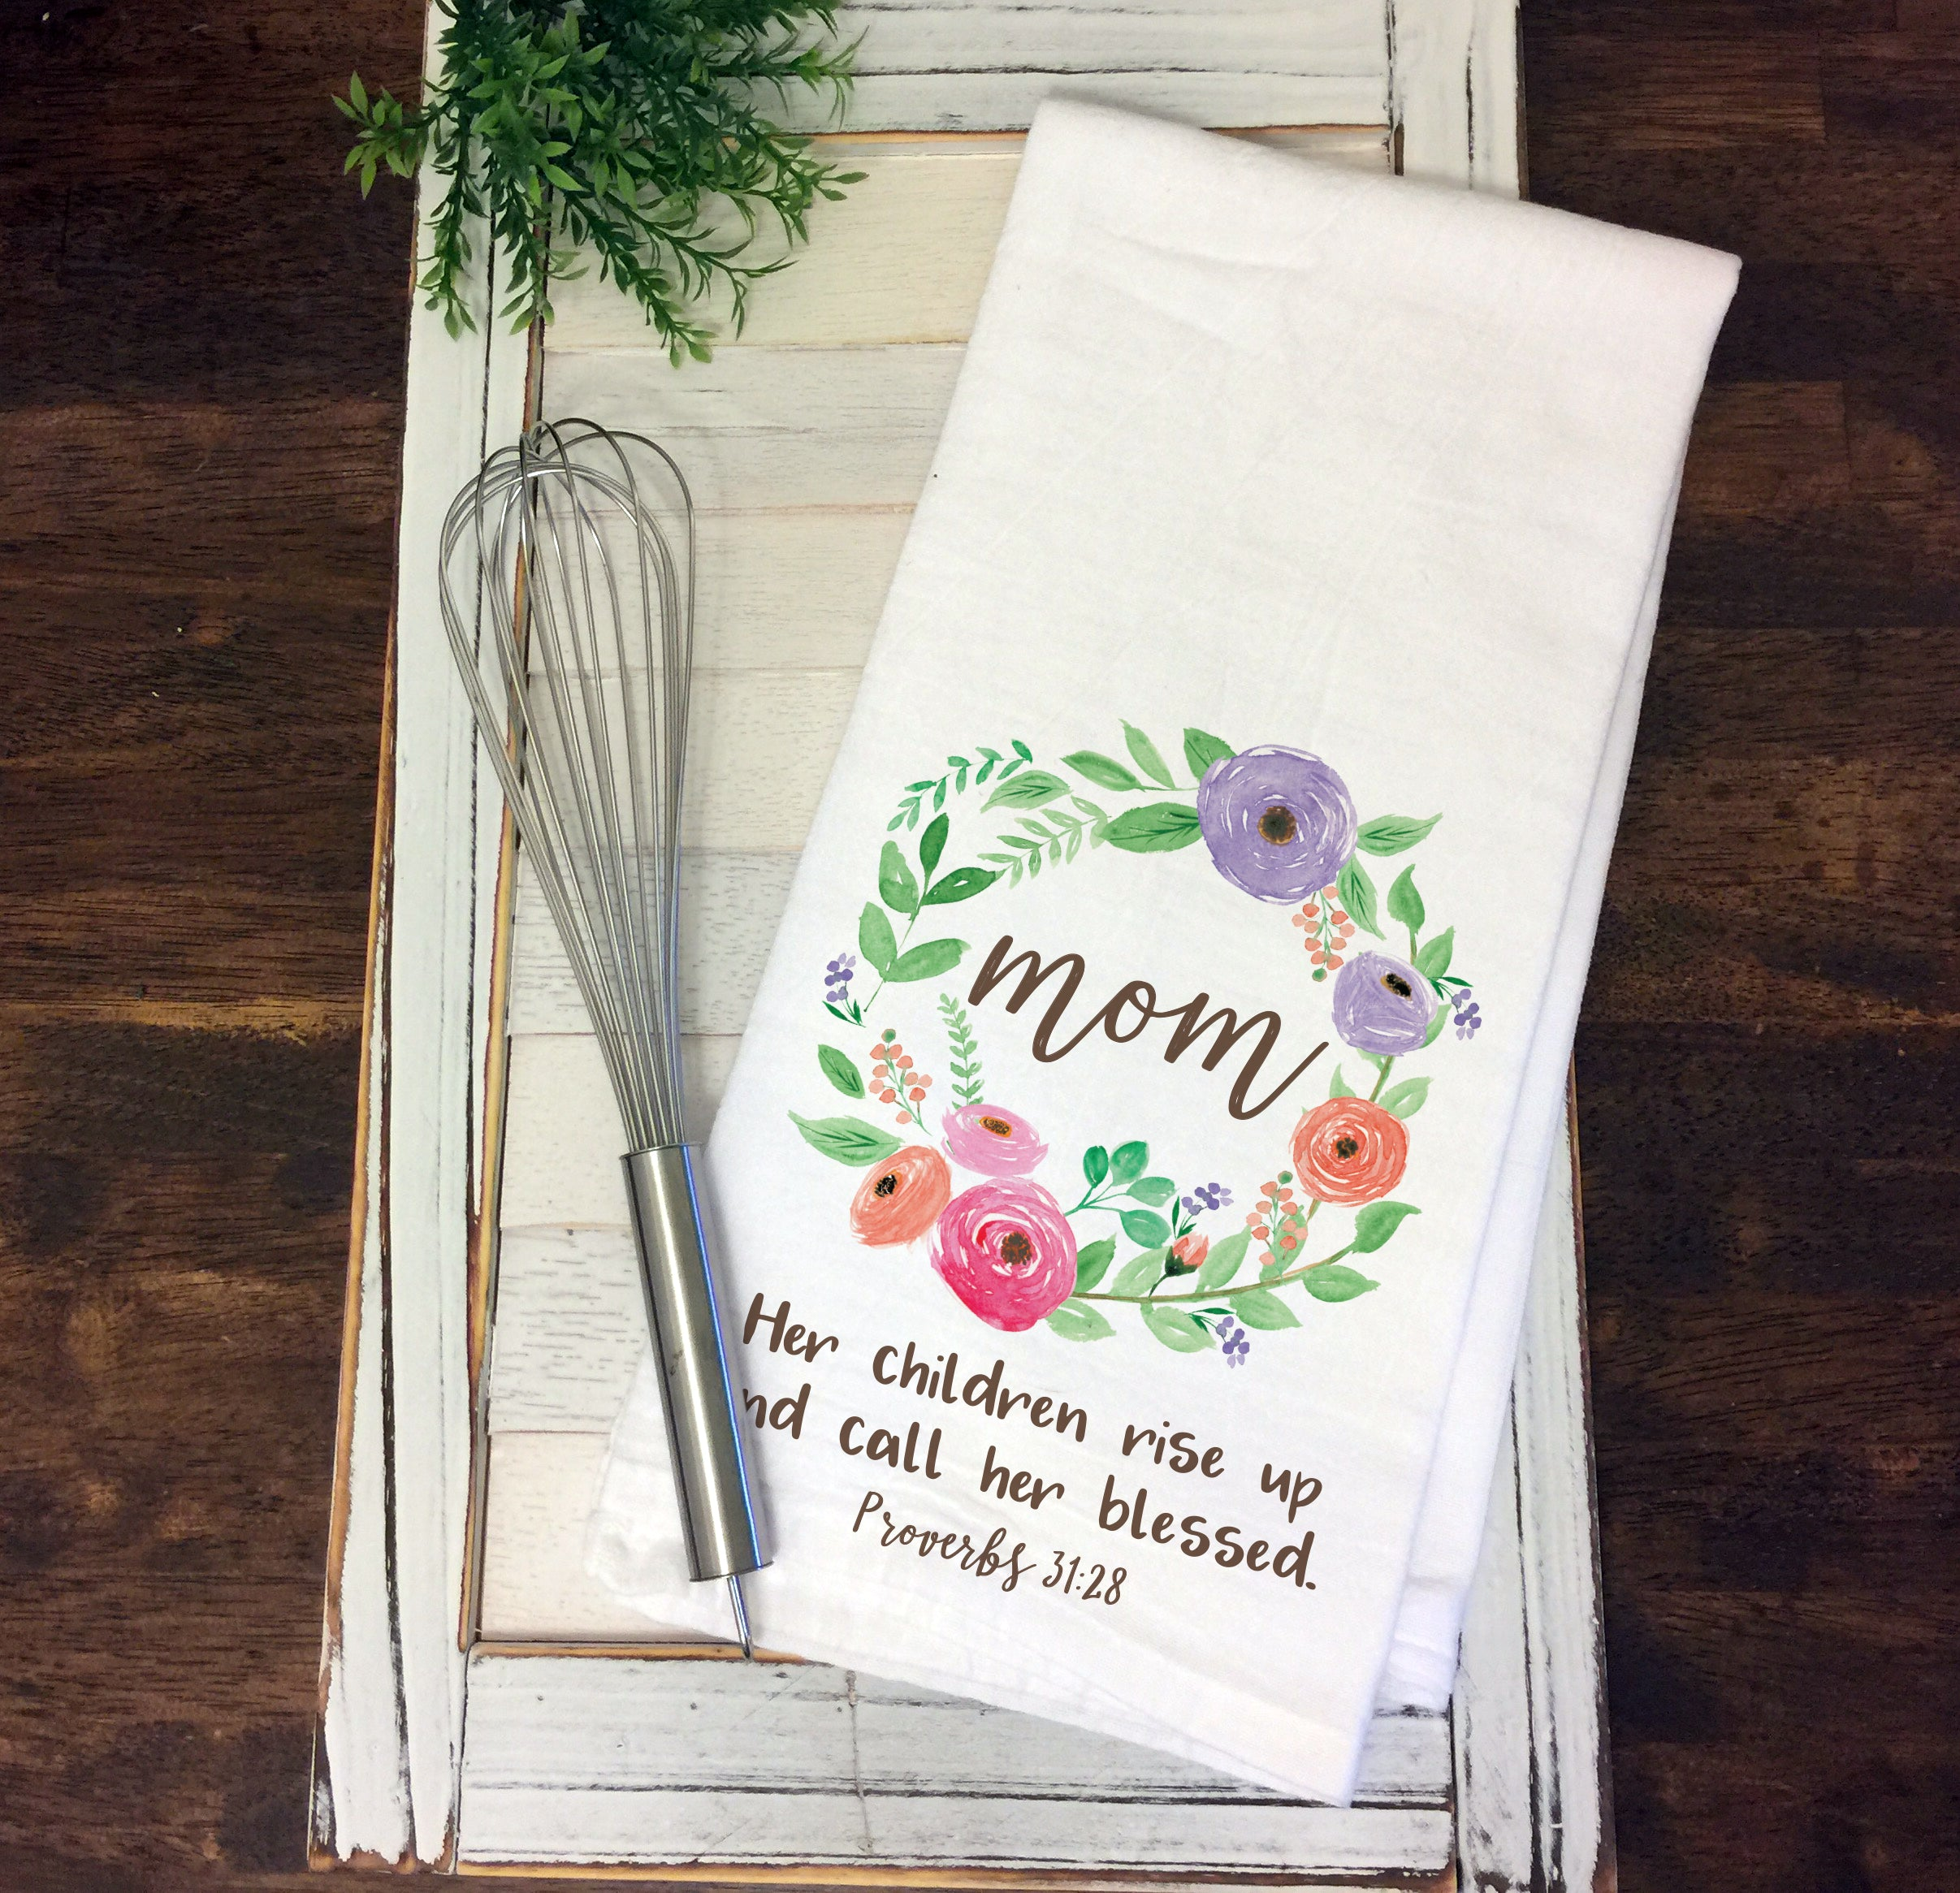 Mom Her Children Rise Up and Call Her Blessed Kitchen Towel Mom Flour Sack Tea Towel Mother's Day Gift Christian Gift for Mom